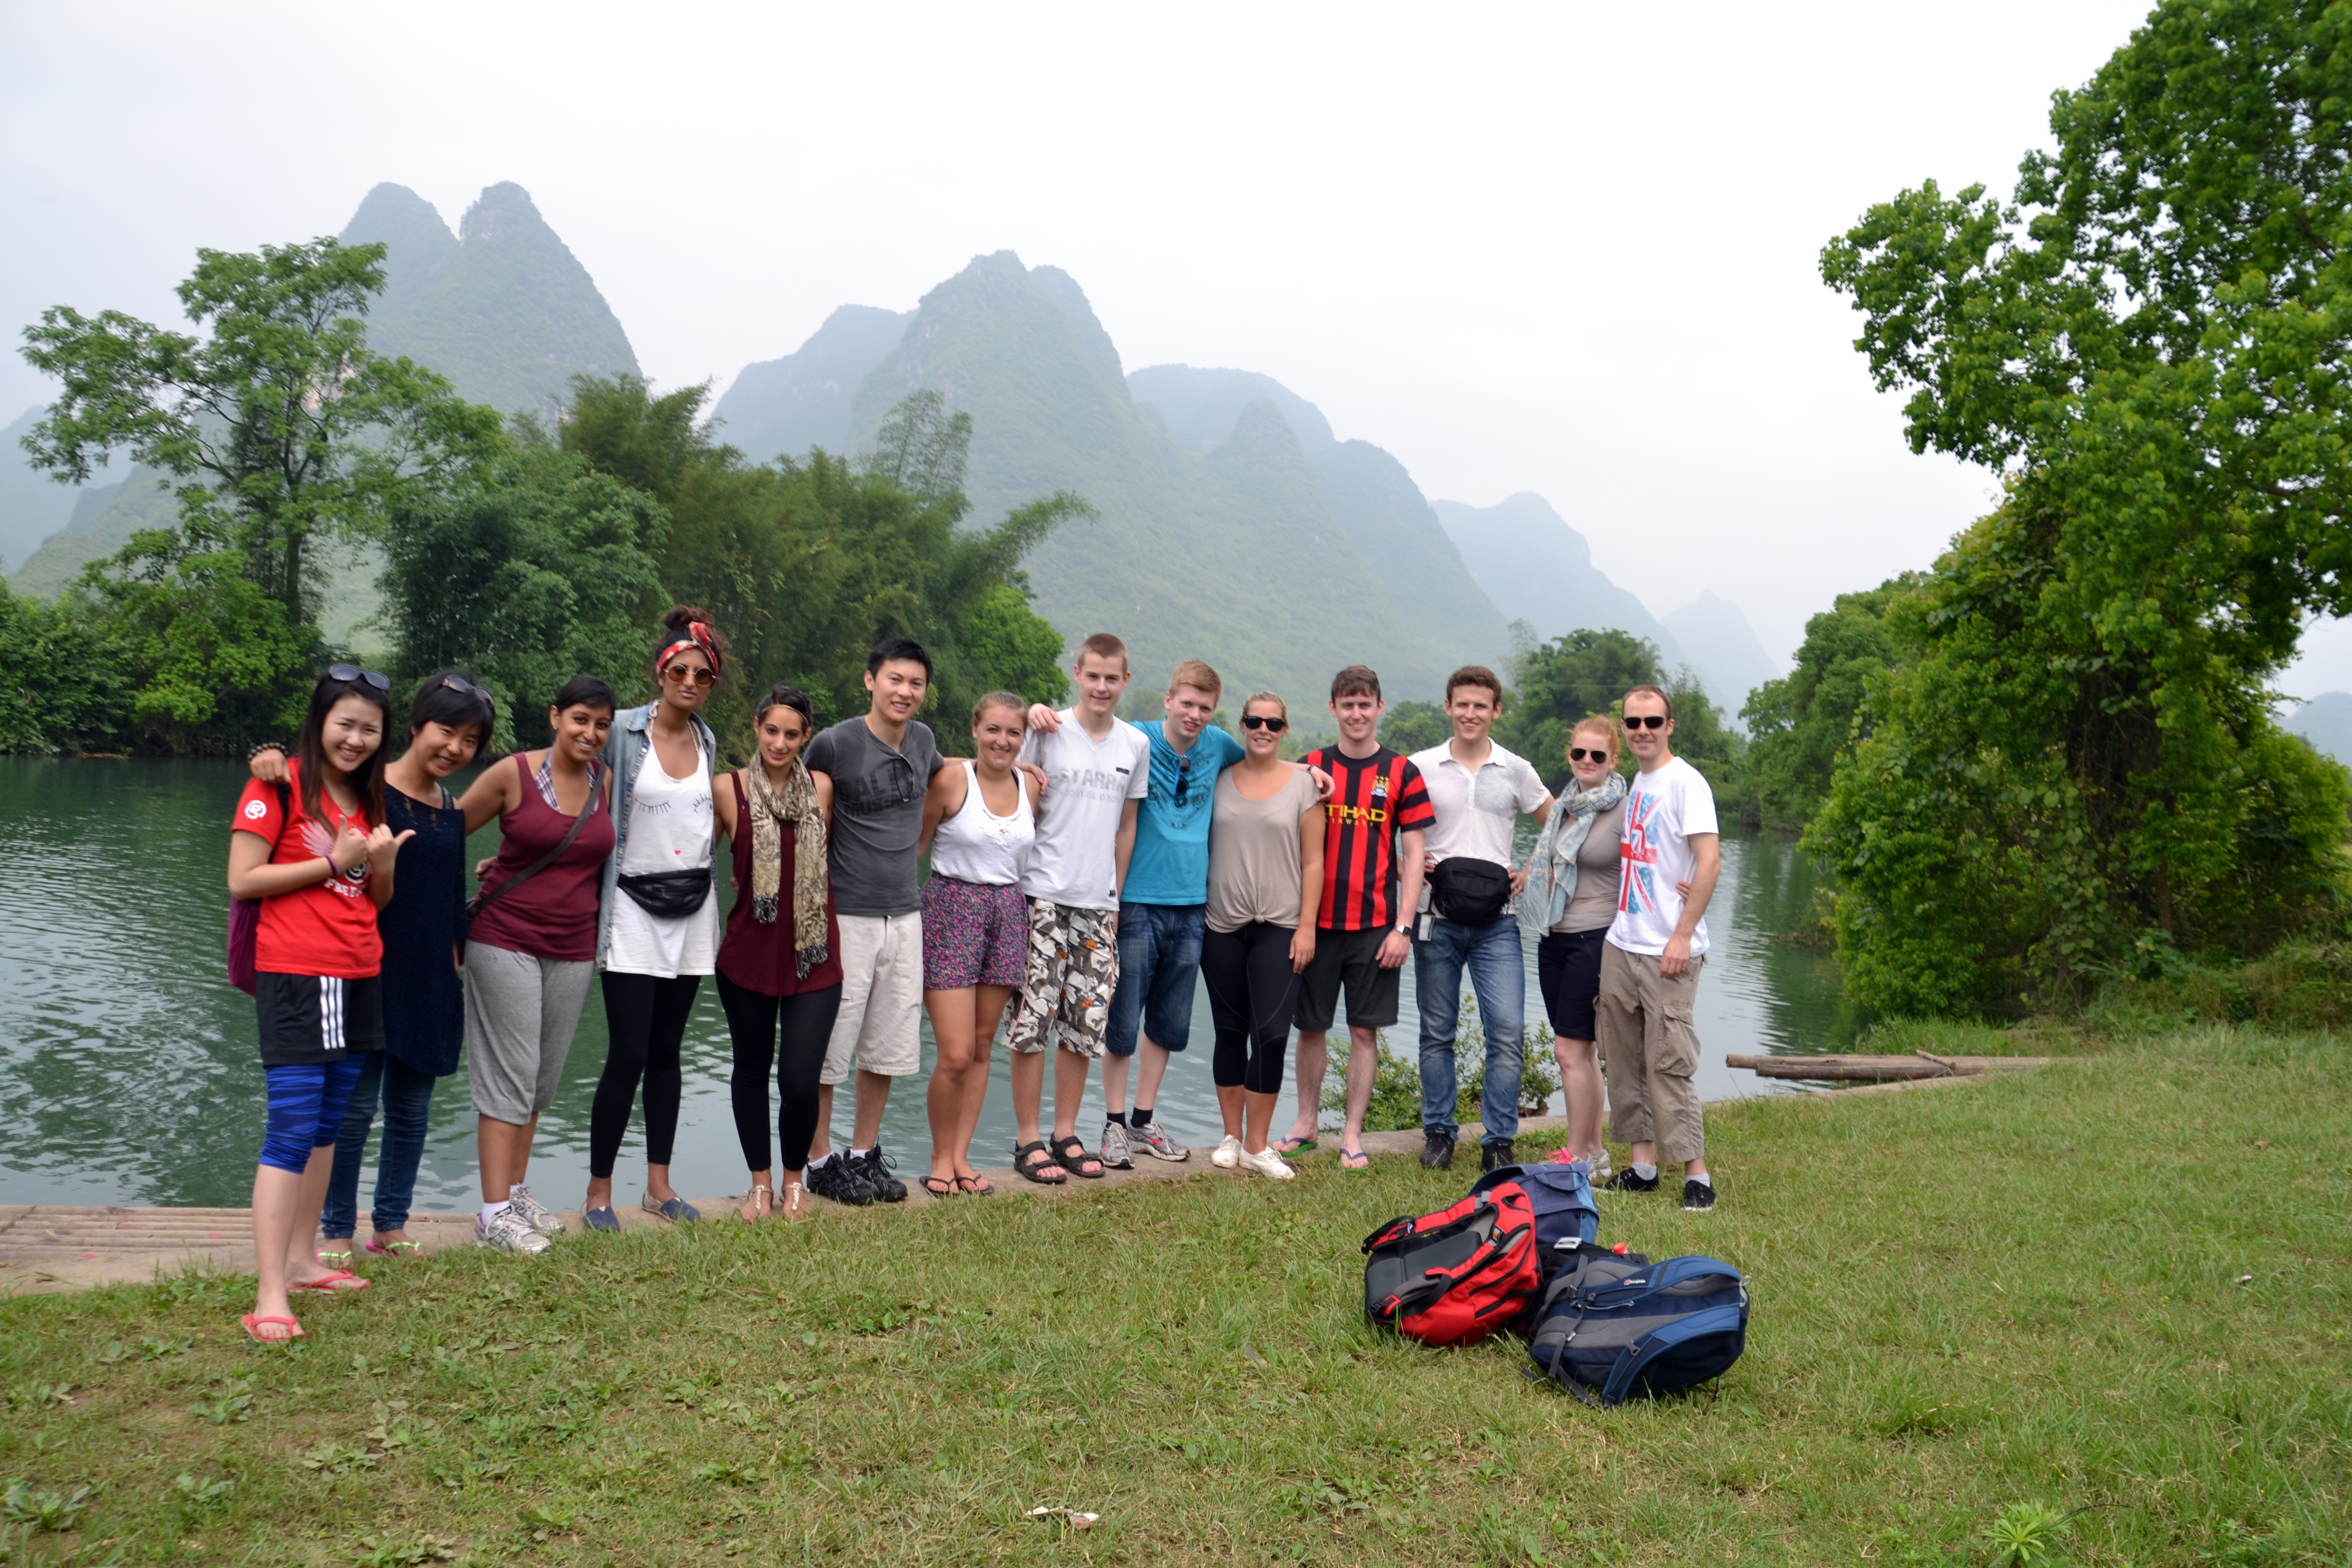 The nature in Yangshuo